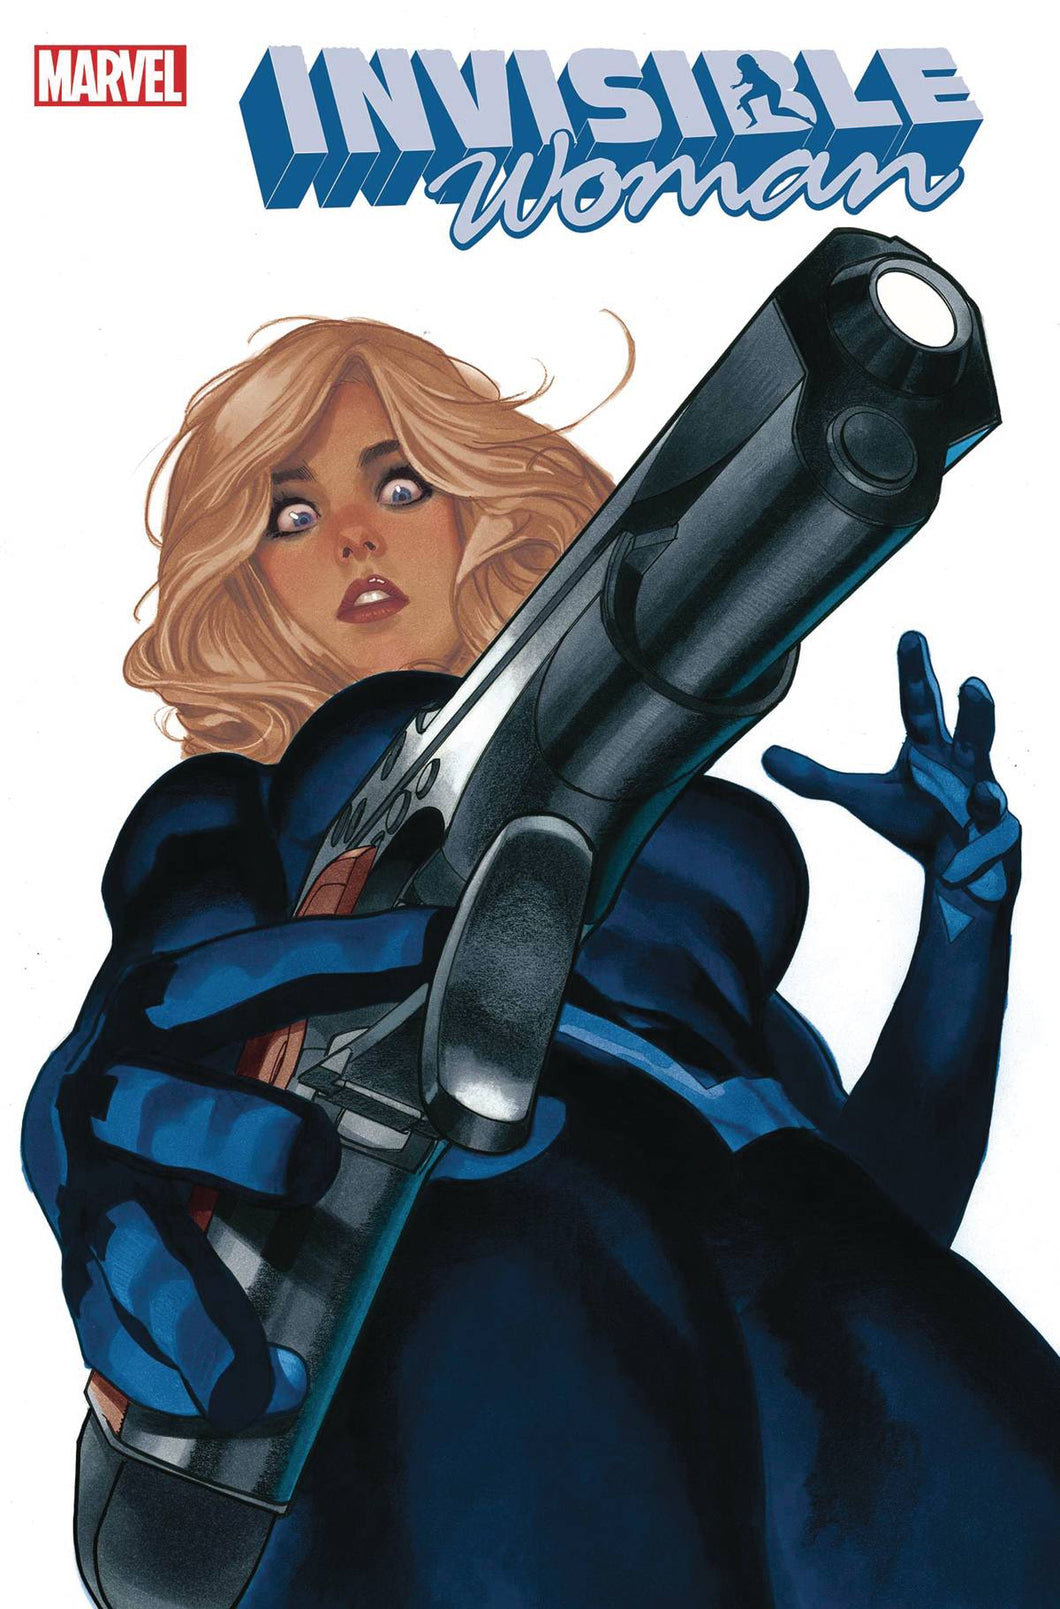 INVISIBLE WOMAN #5 (OF 5) 11/27/19 FOC 11/04/19